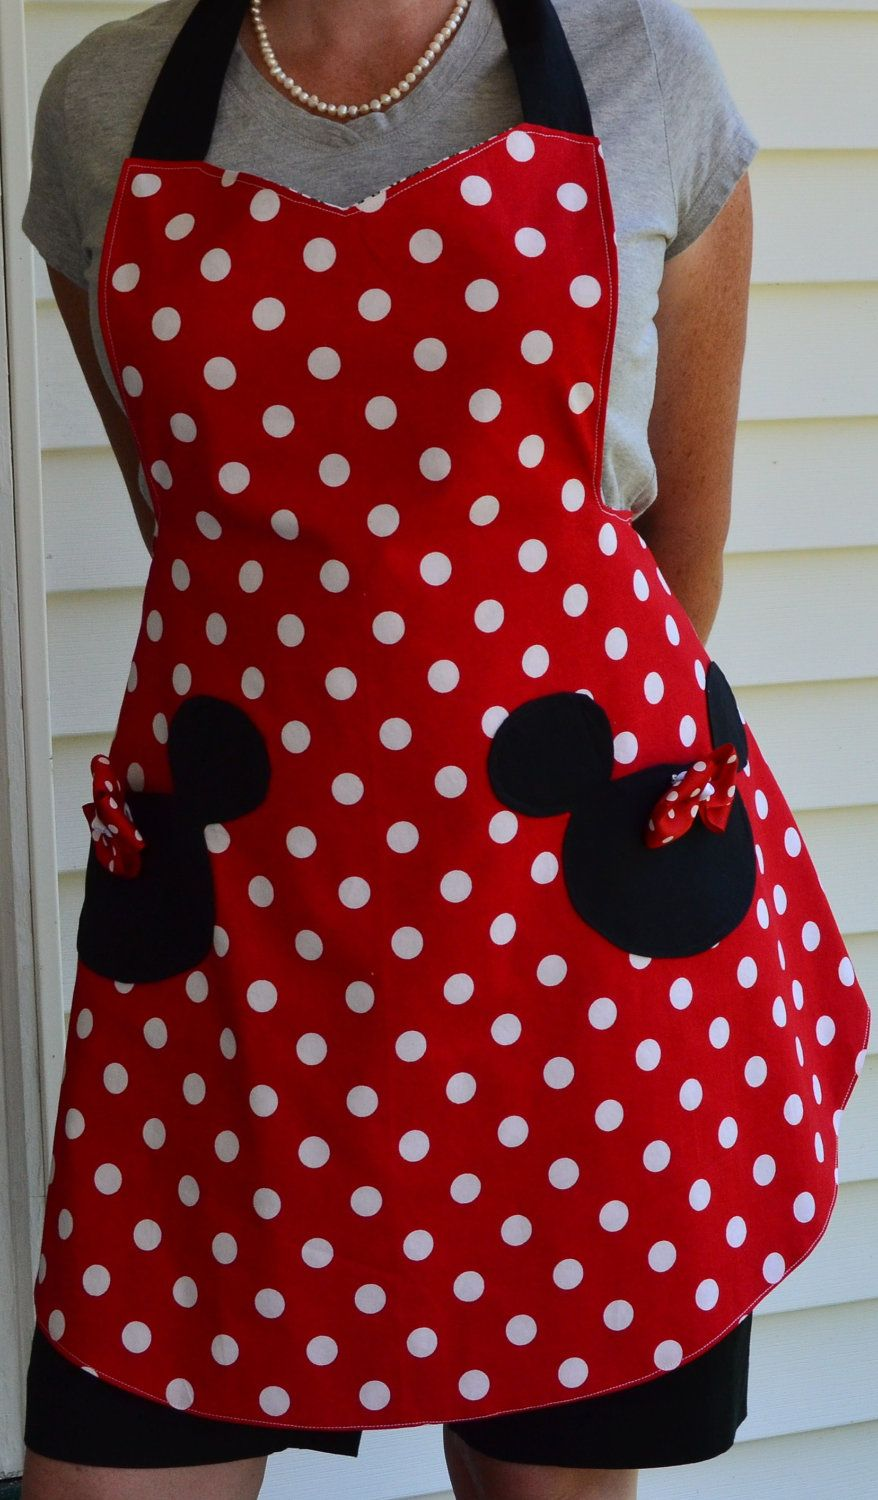 Snow white apron etsy - 1000 Images About Aprons On Pinterest Disney Vintage Style And Retro Style